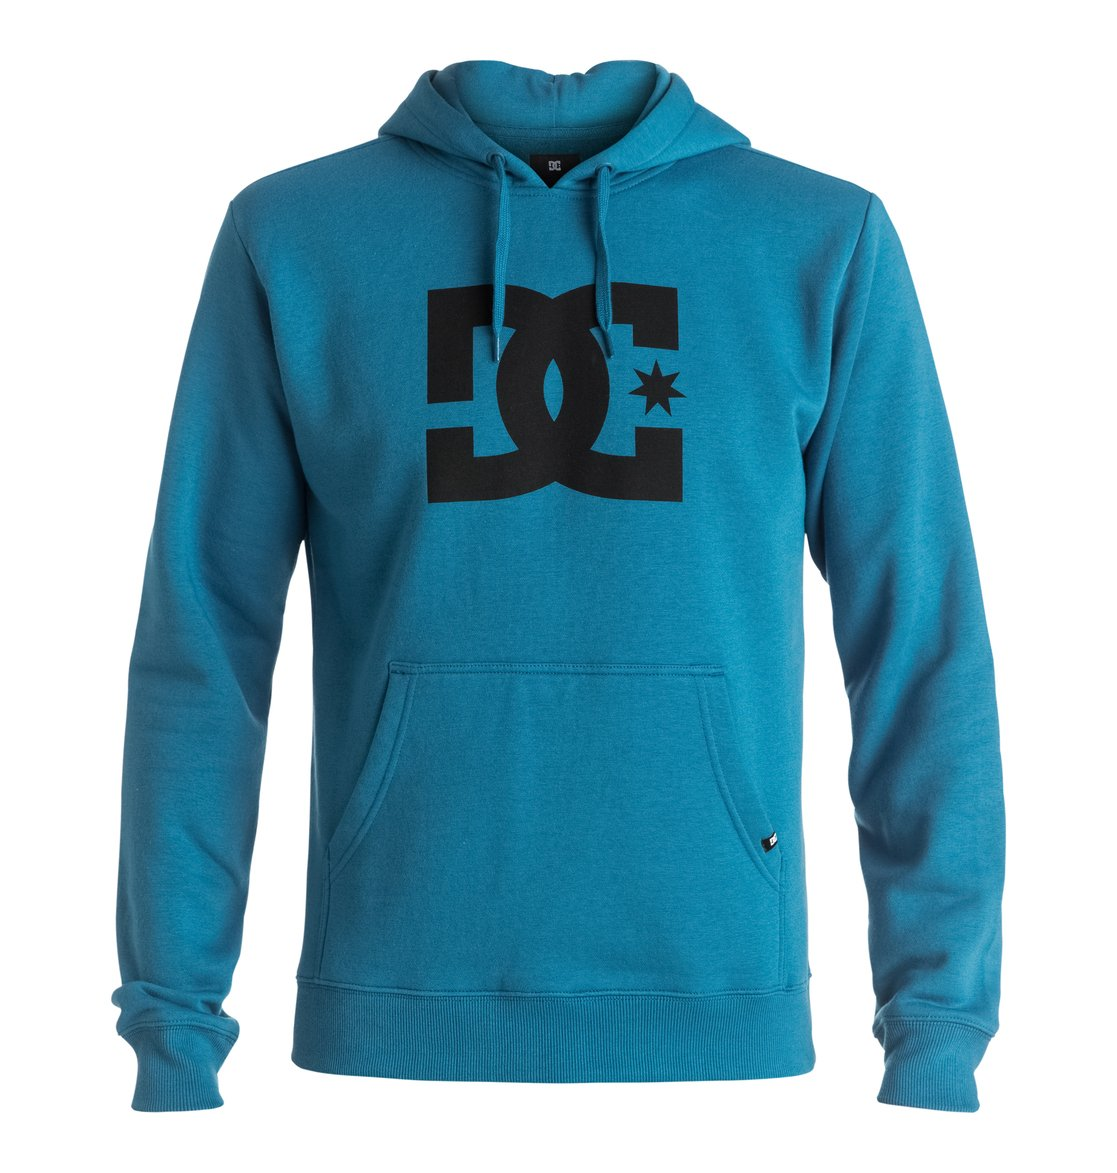 Dc pullover hoodies